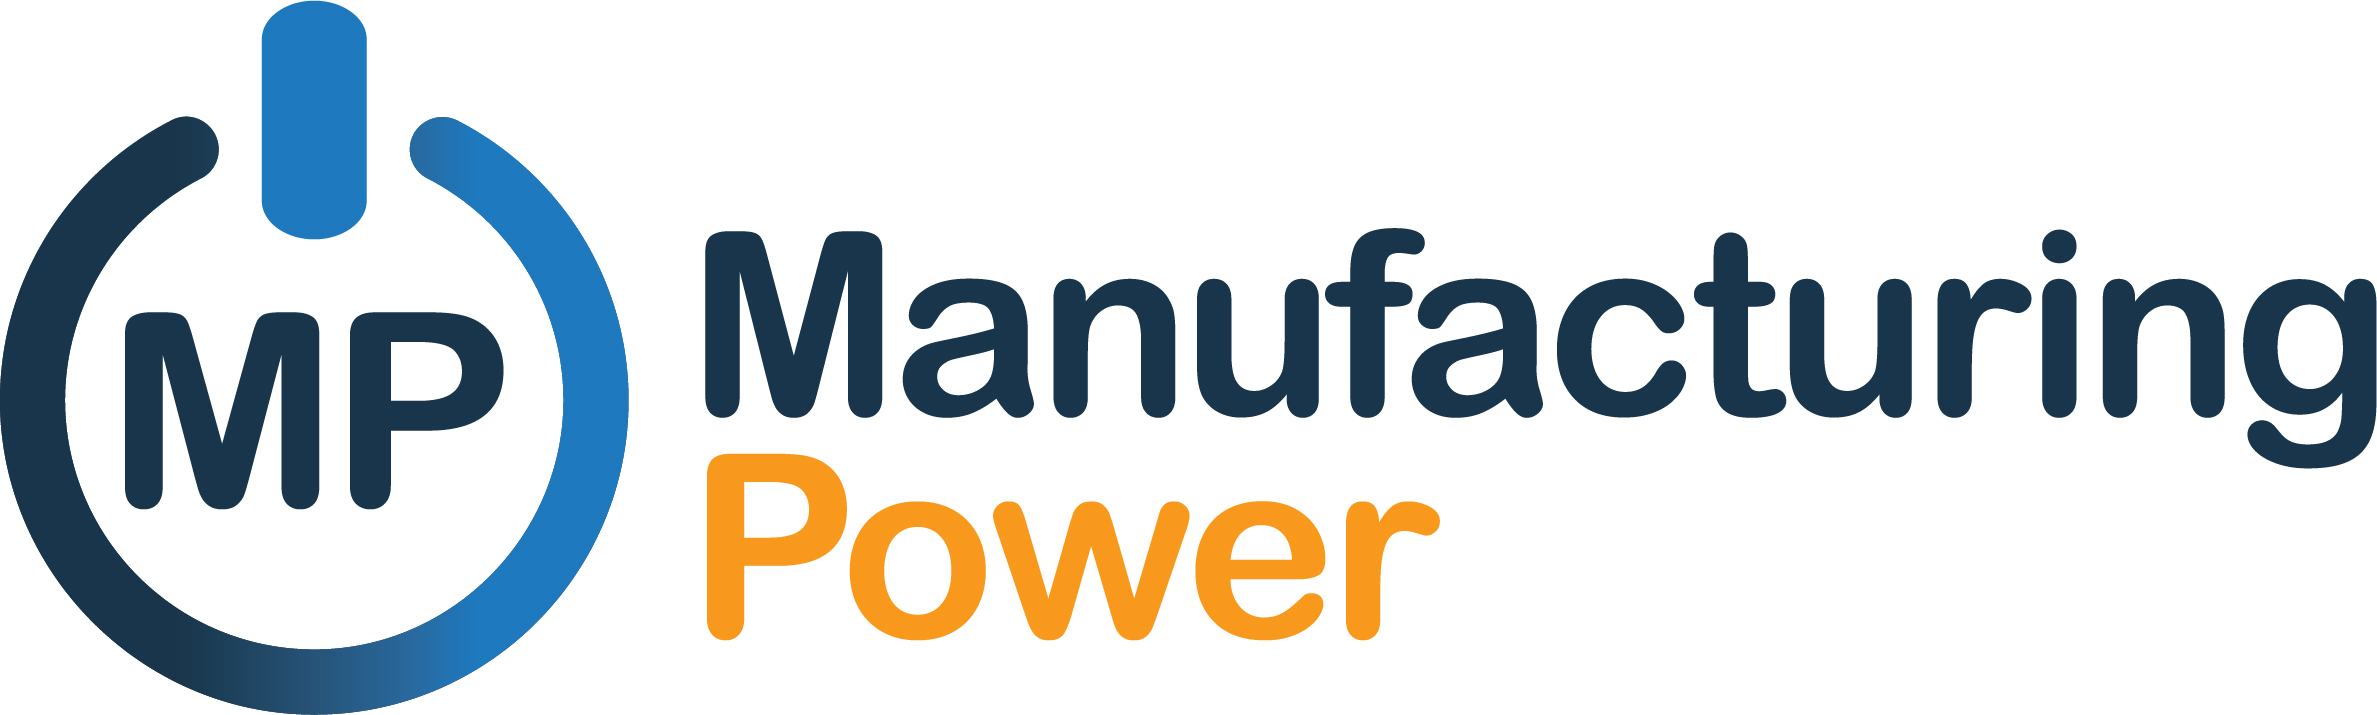 ManufacturingPower Video Explains Price Comparison Accessible for Small Manufacturers